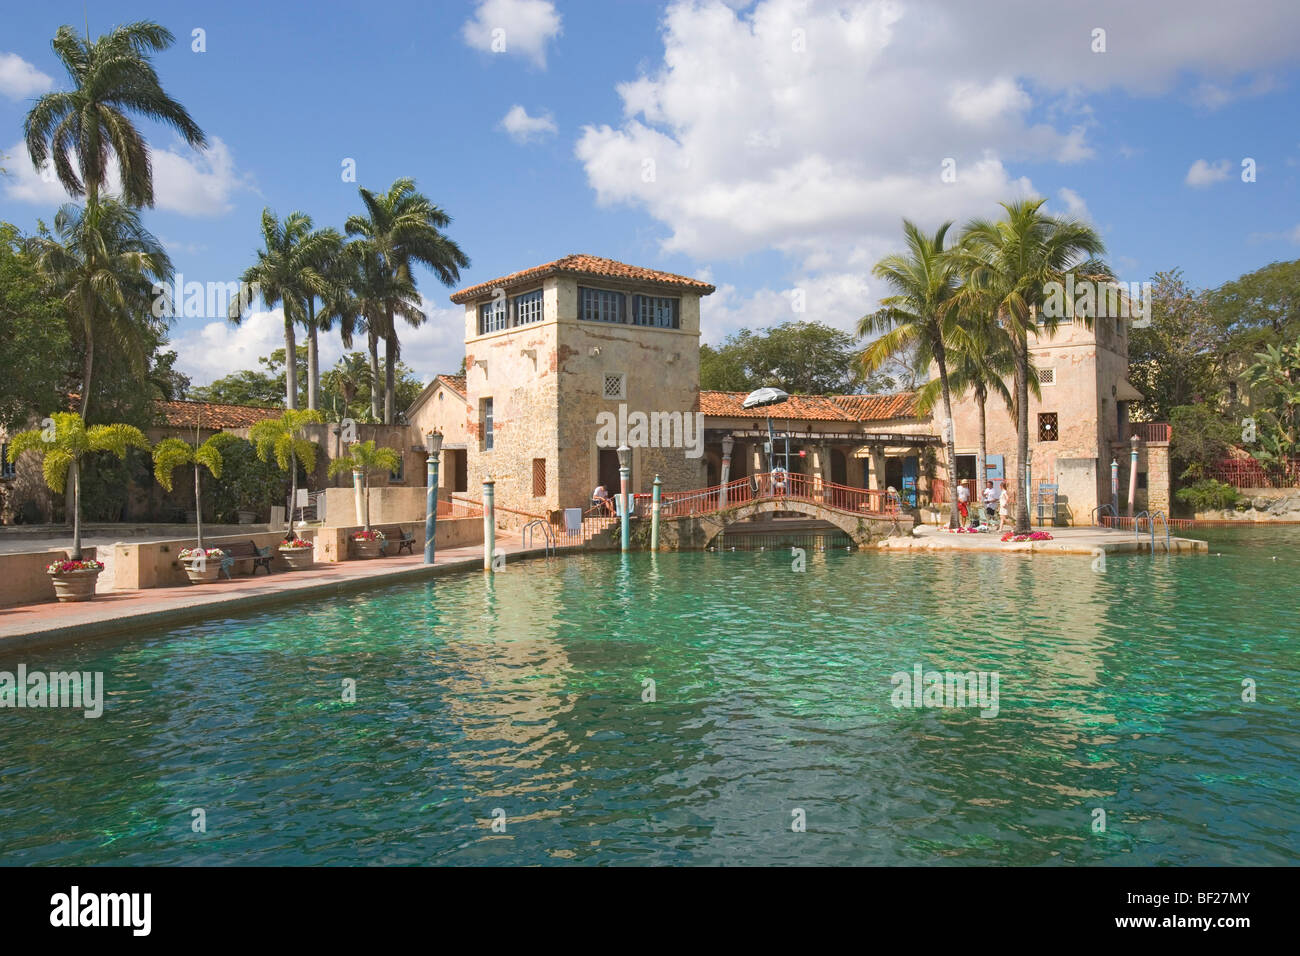 View at a deserted swimming pool in the sunlight, Venetian Pool, Miami, Florida, USA - Stock Image